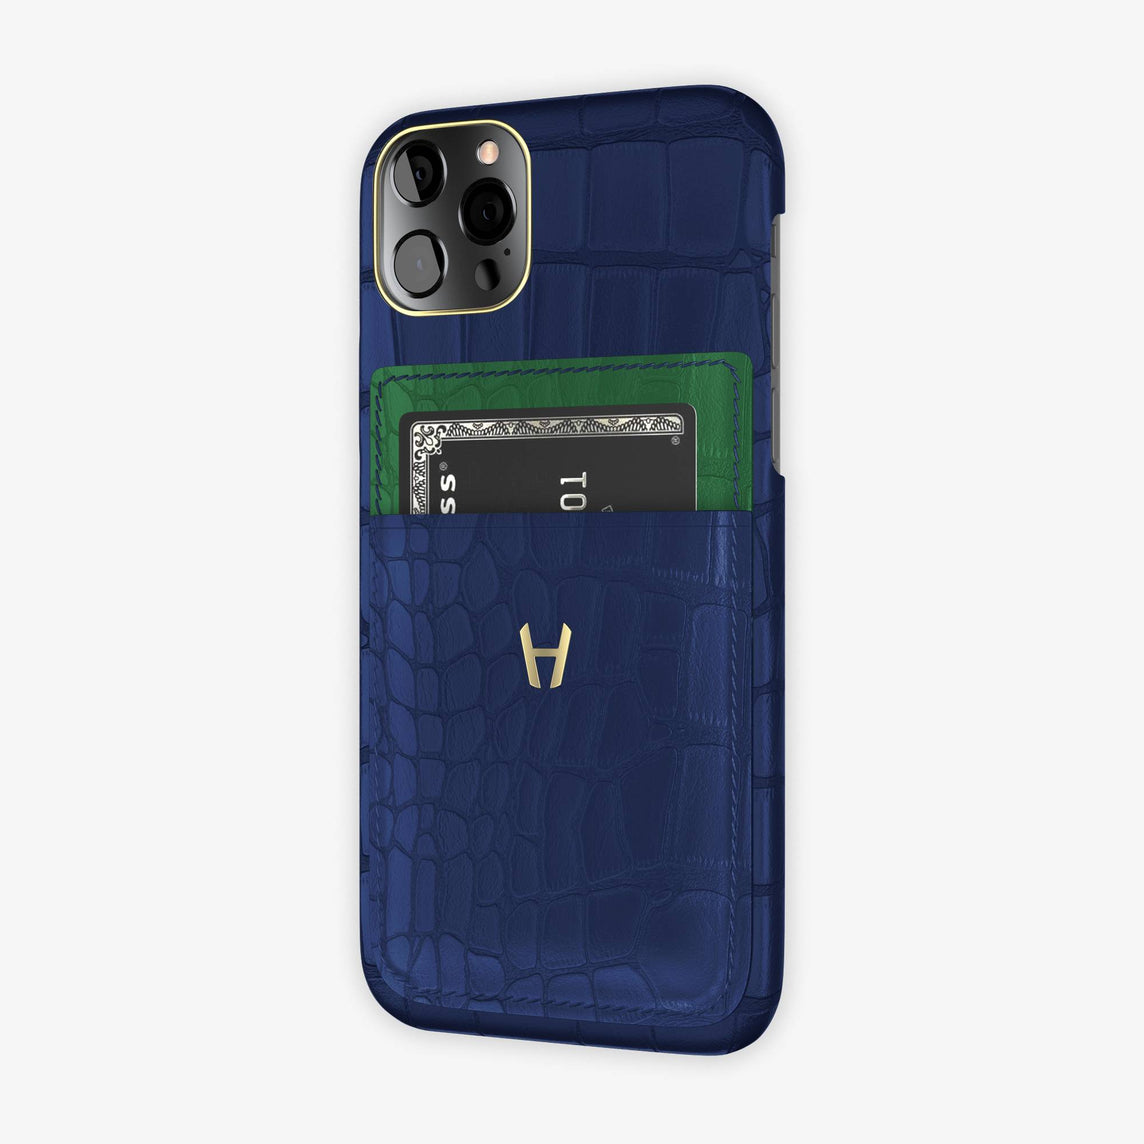 Alligator Pocket Case iPhone 12 & 12 Pro | Navy Blue/Green Emerald - Yellow Gold